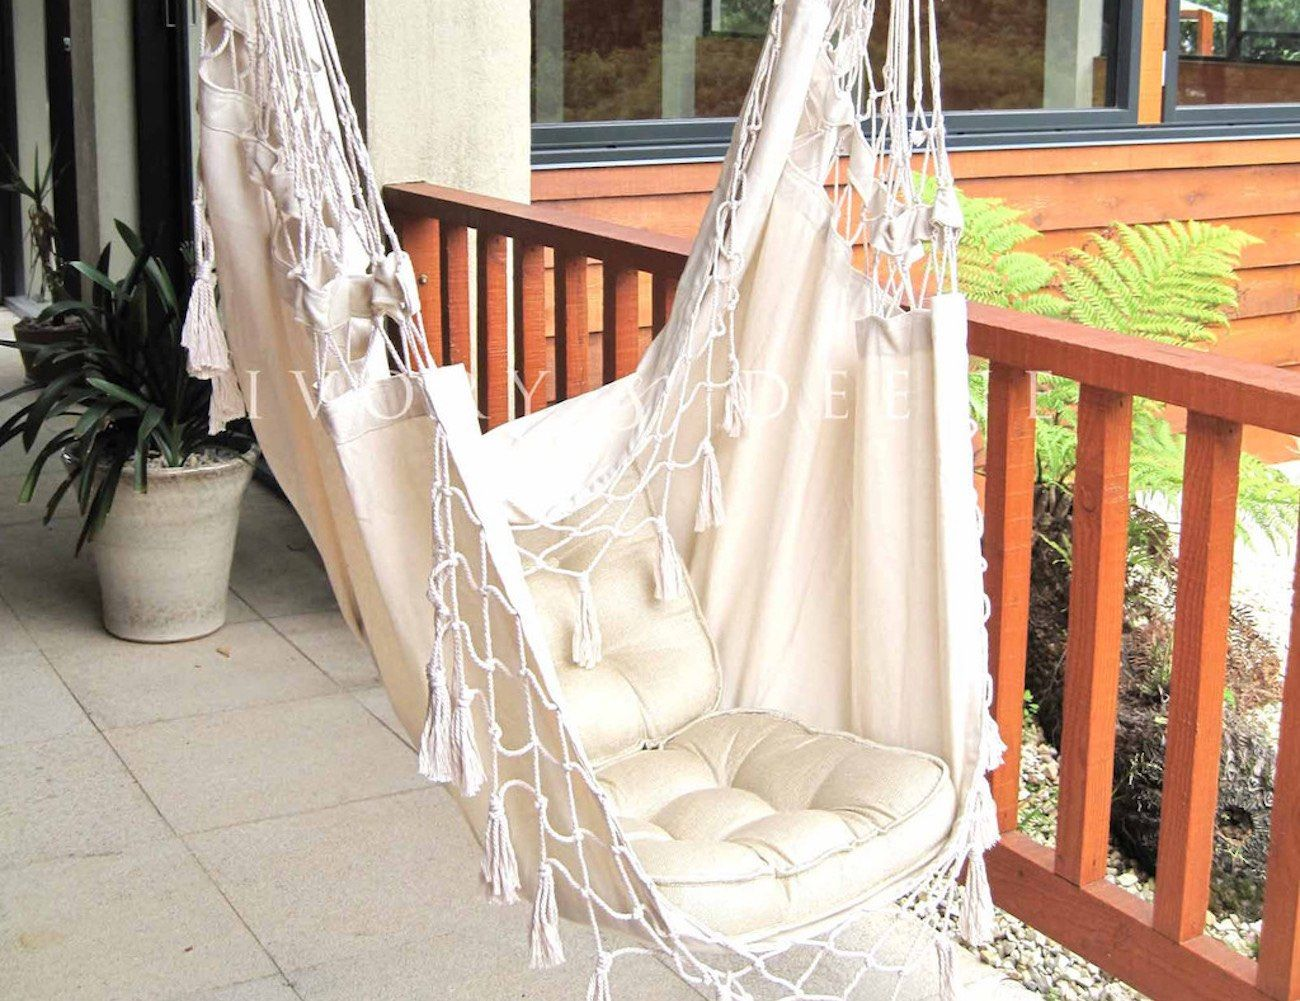 Create A Relaxing Space With This Luxury French Provincial Hammock Chair;  Choose A Tree Or The Verandah Out The Back, And We Just Know Youu0027ll Have A  Good ...